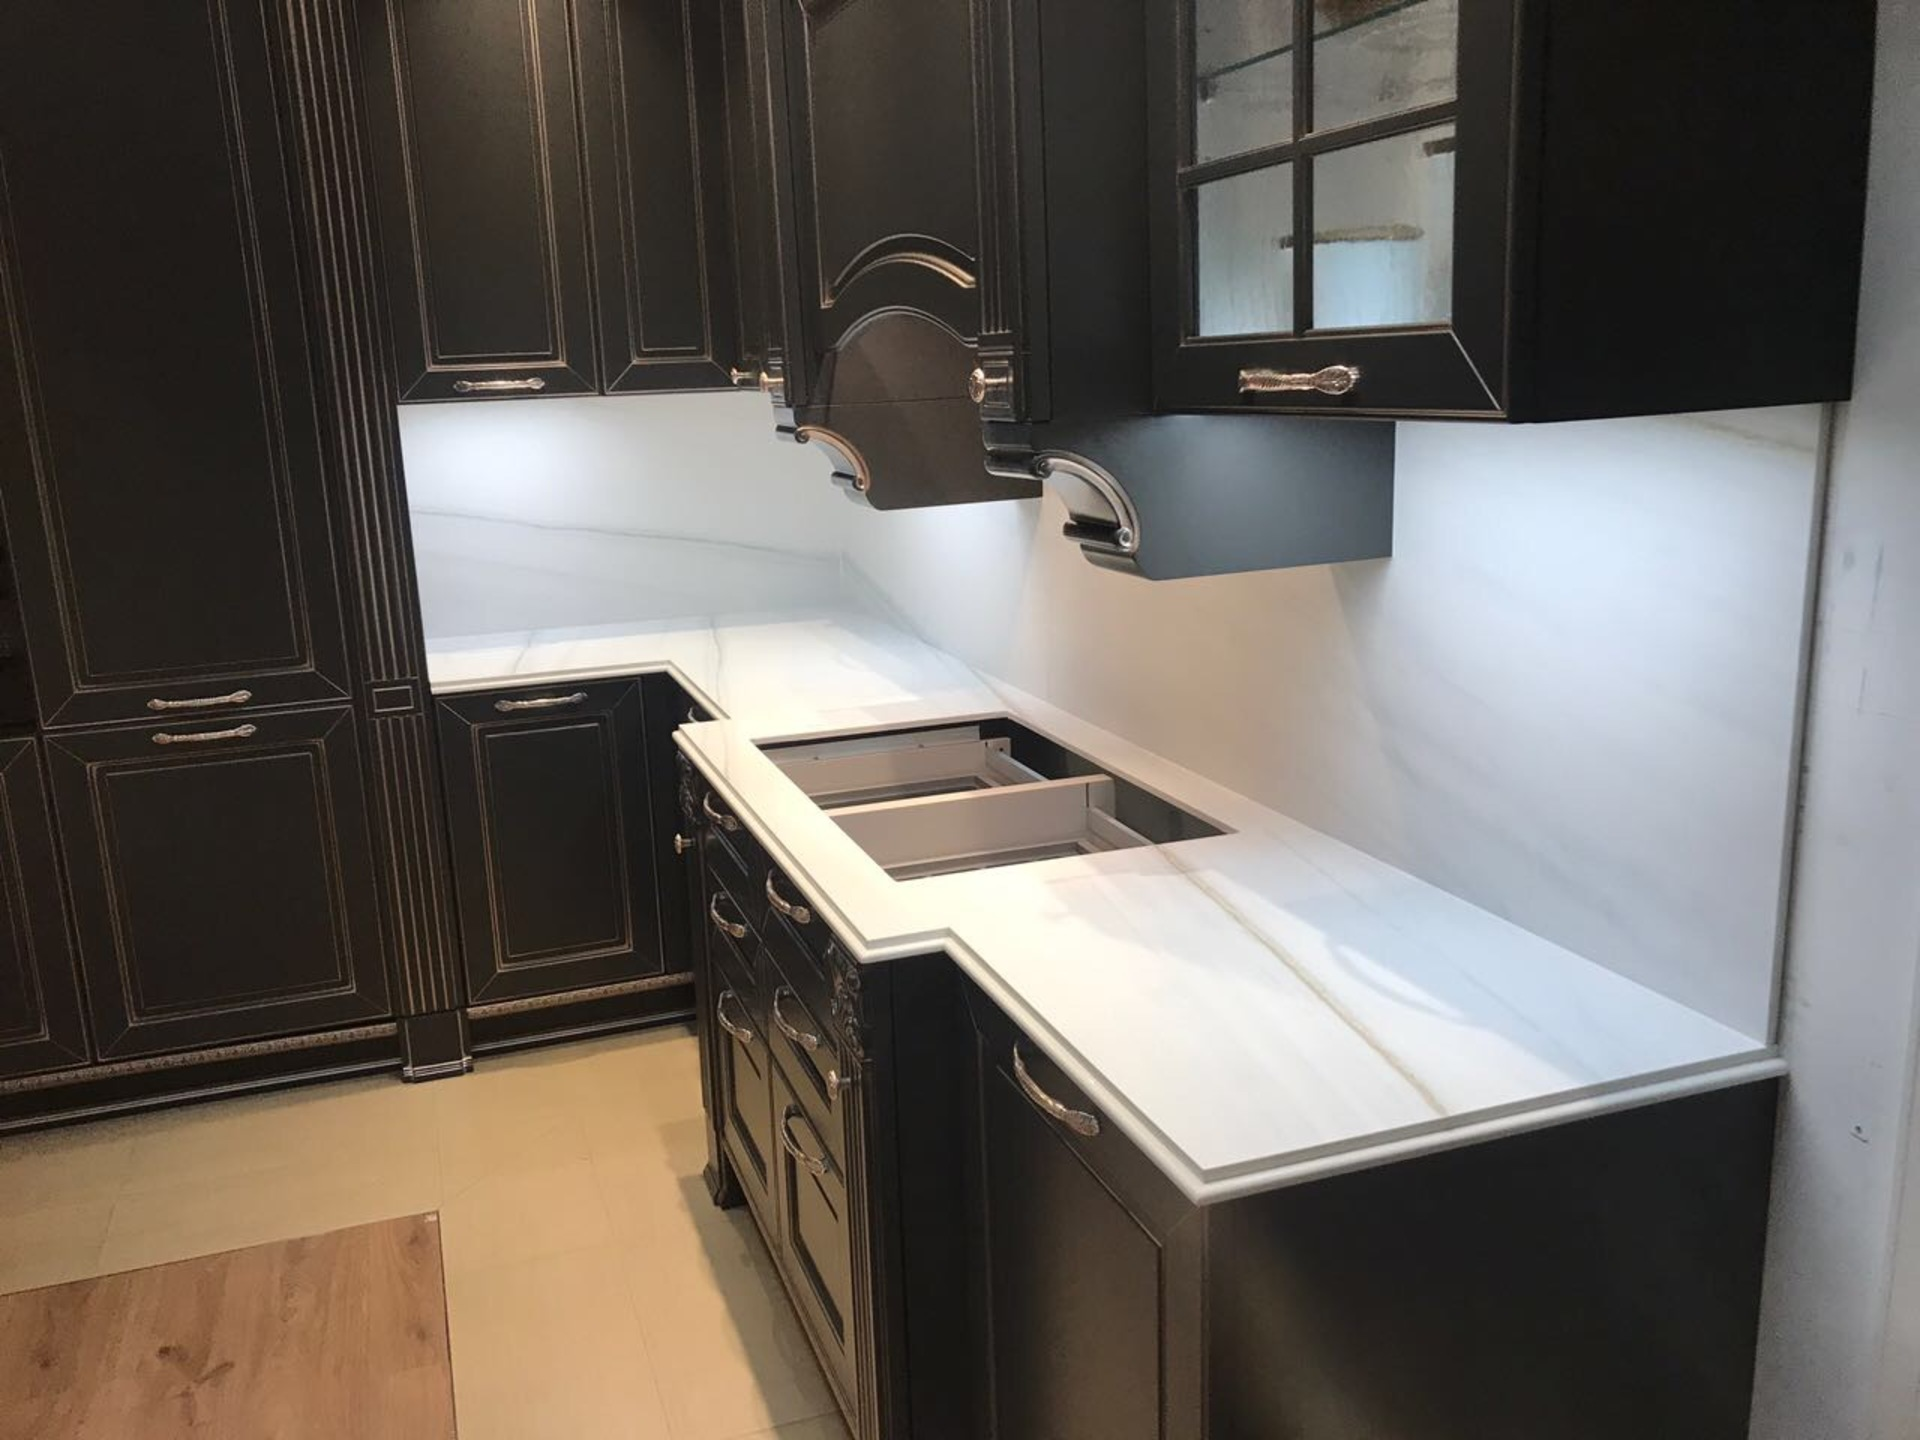 Let be inspired by SapienStone kitchen countertops - Gallery